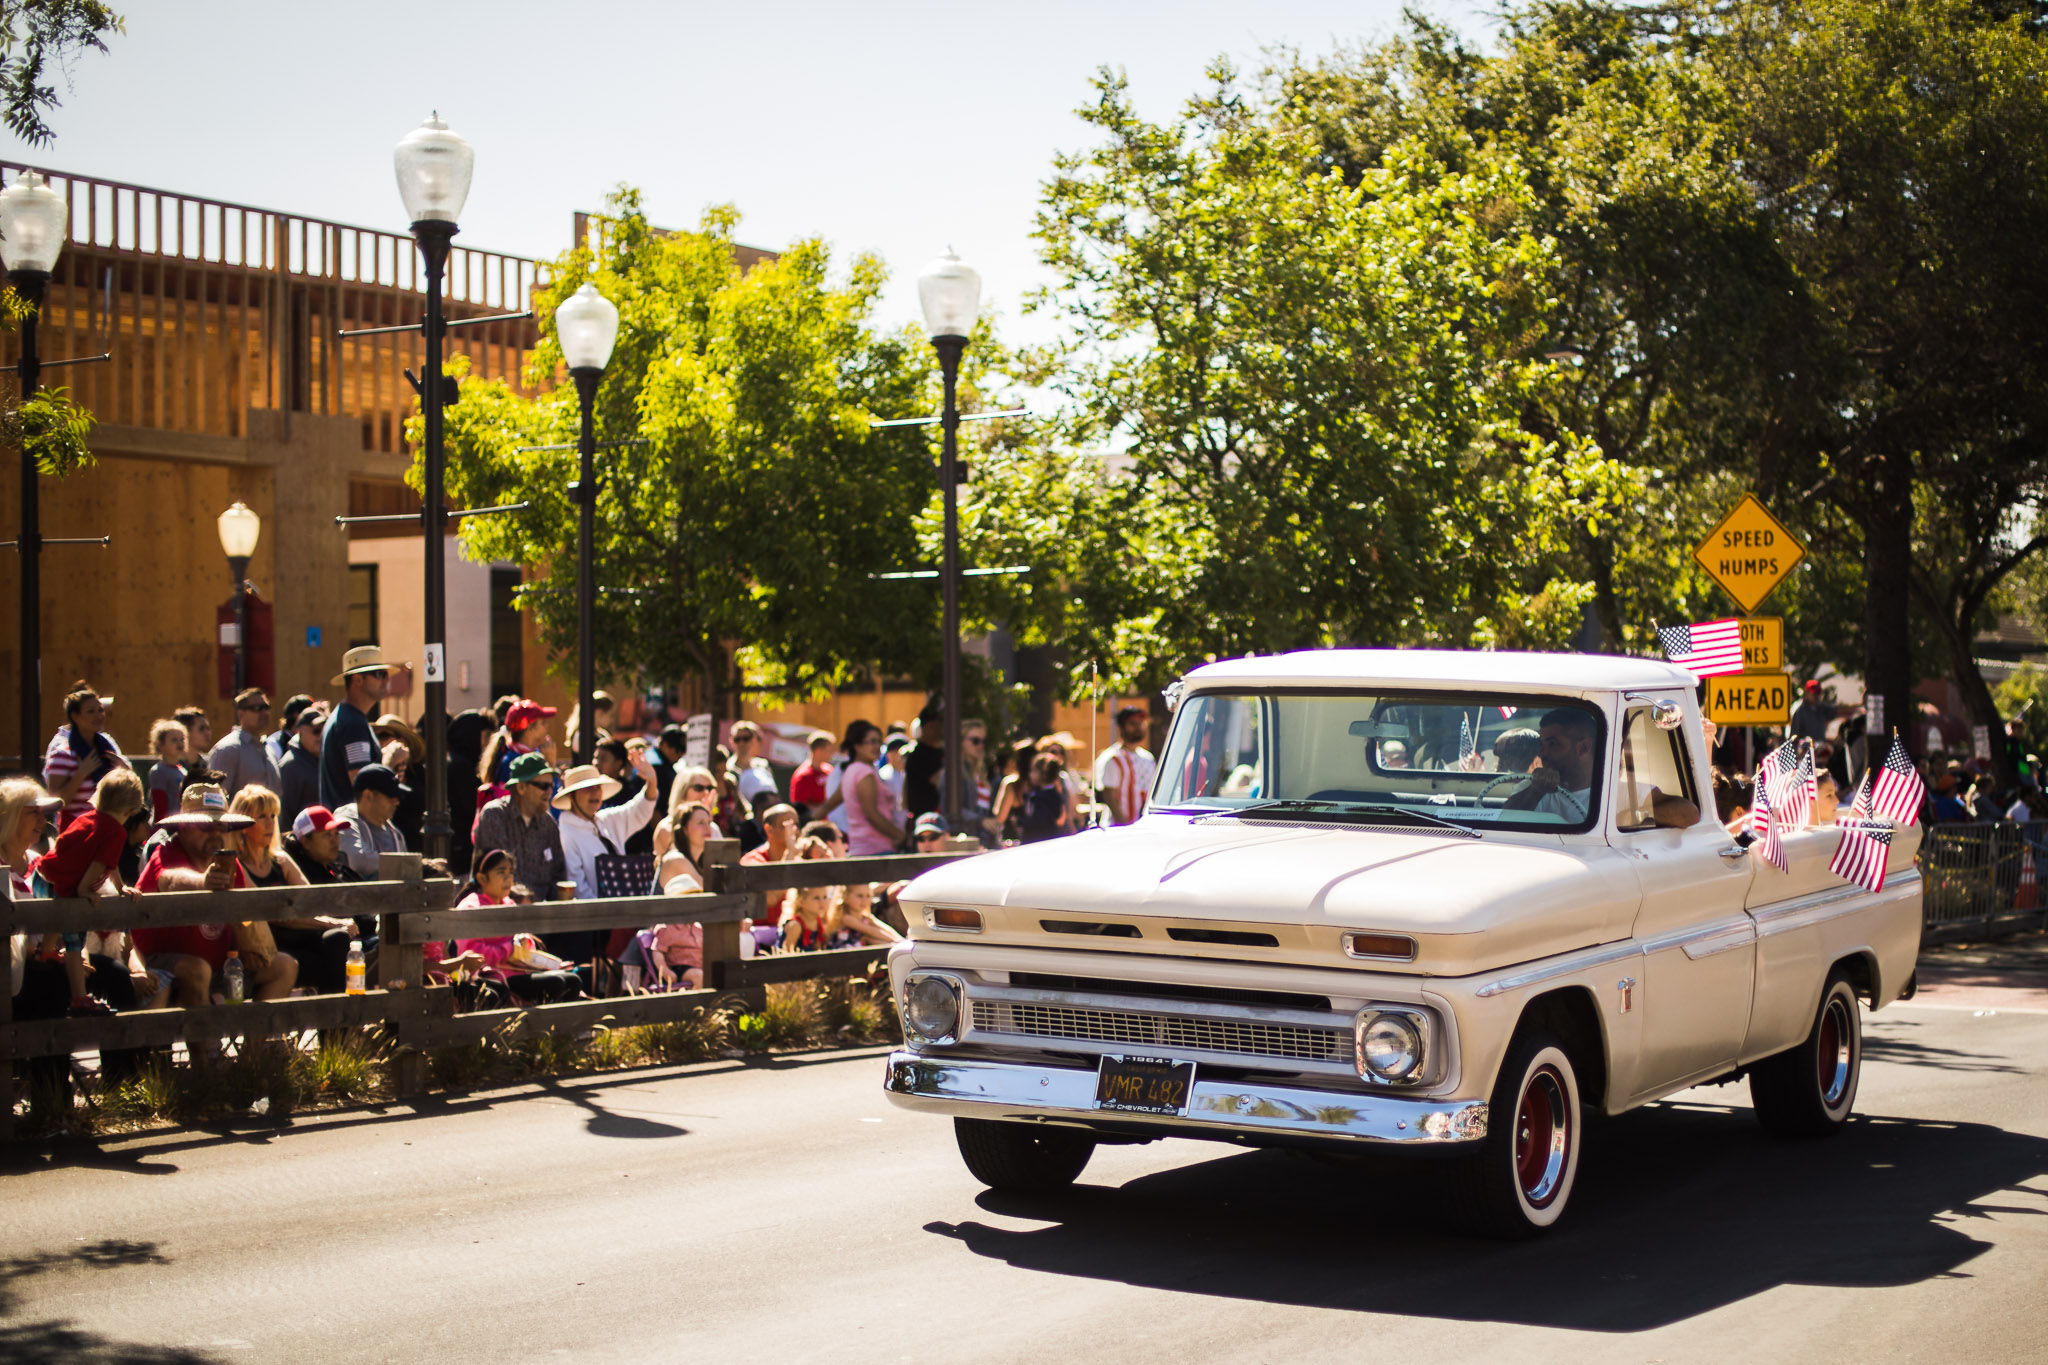 Archer_Inspired_Photography_Morgan_Hill_California_4th_of_july_parade-29.jpg